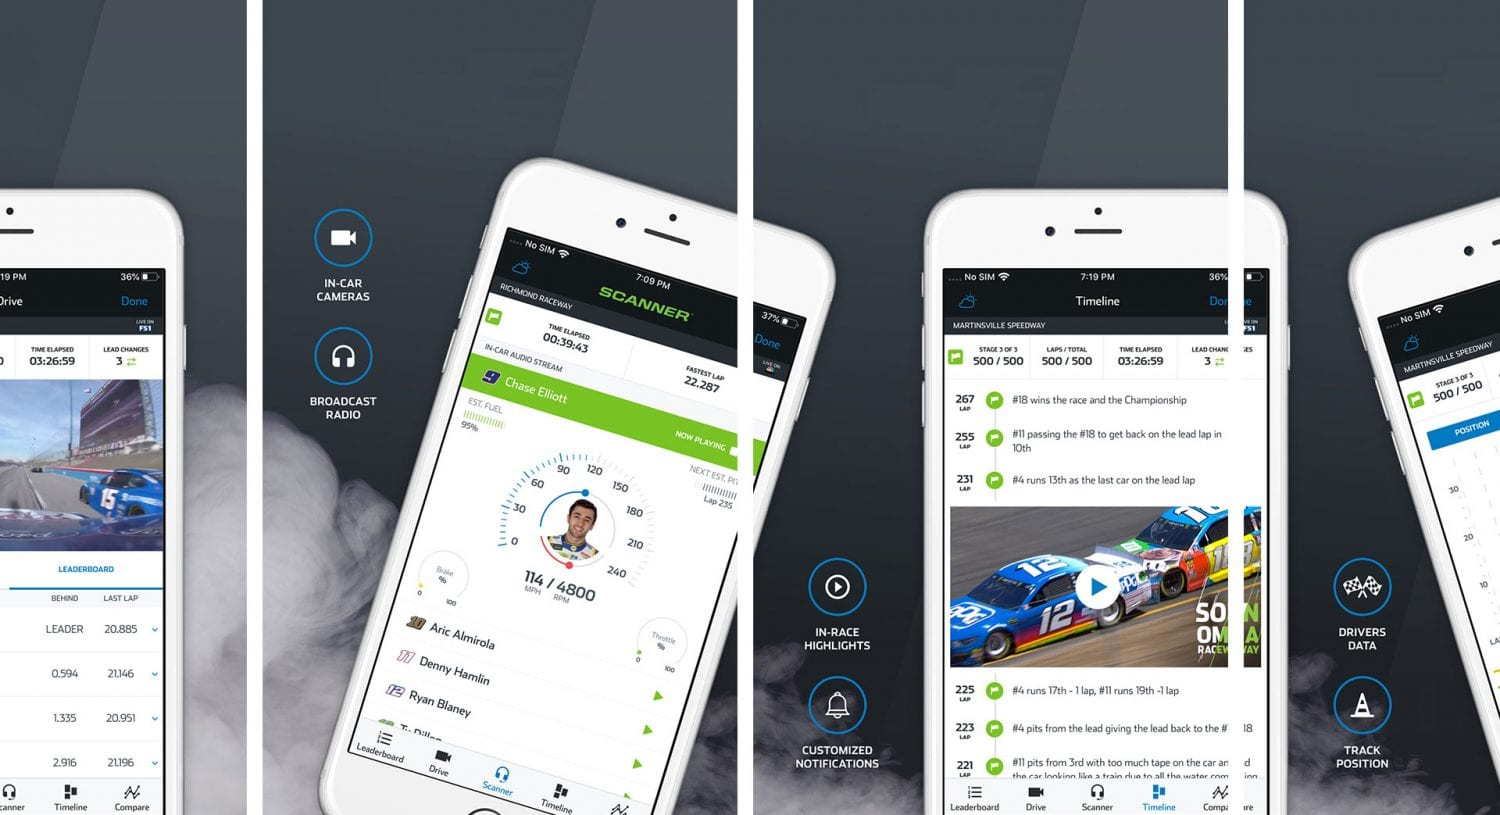 The Official App of NASCAR